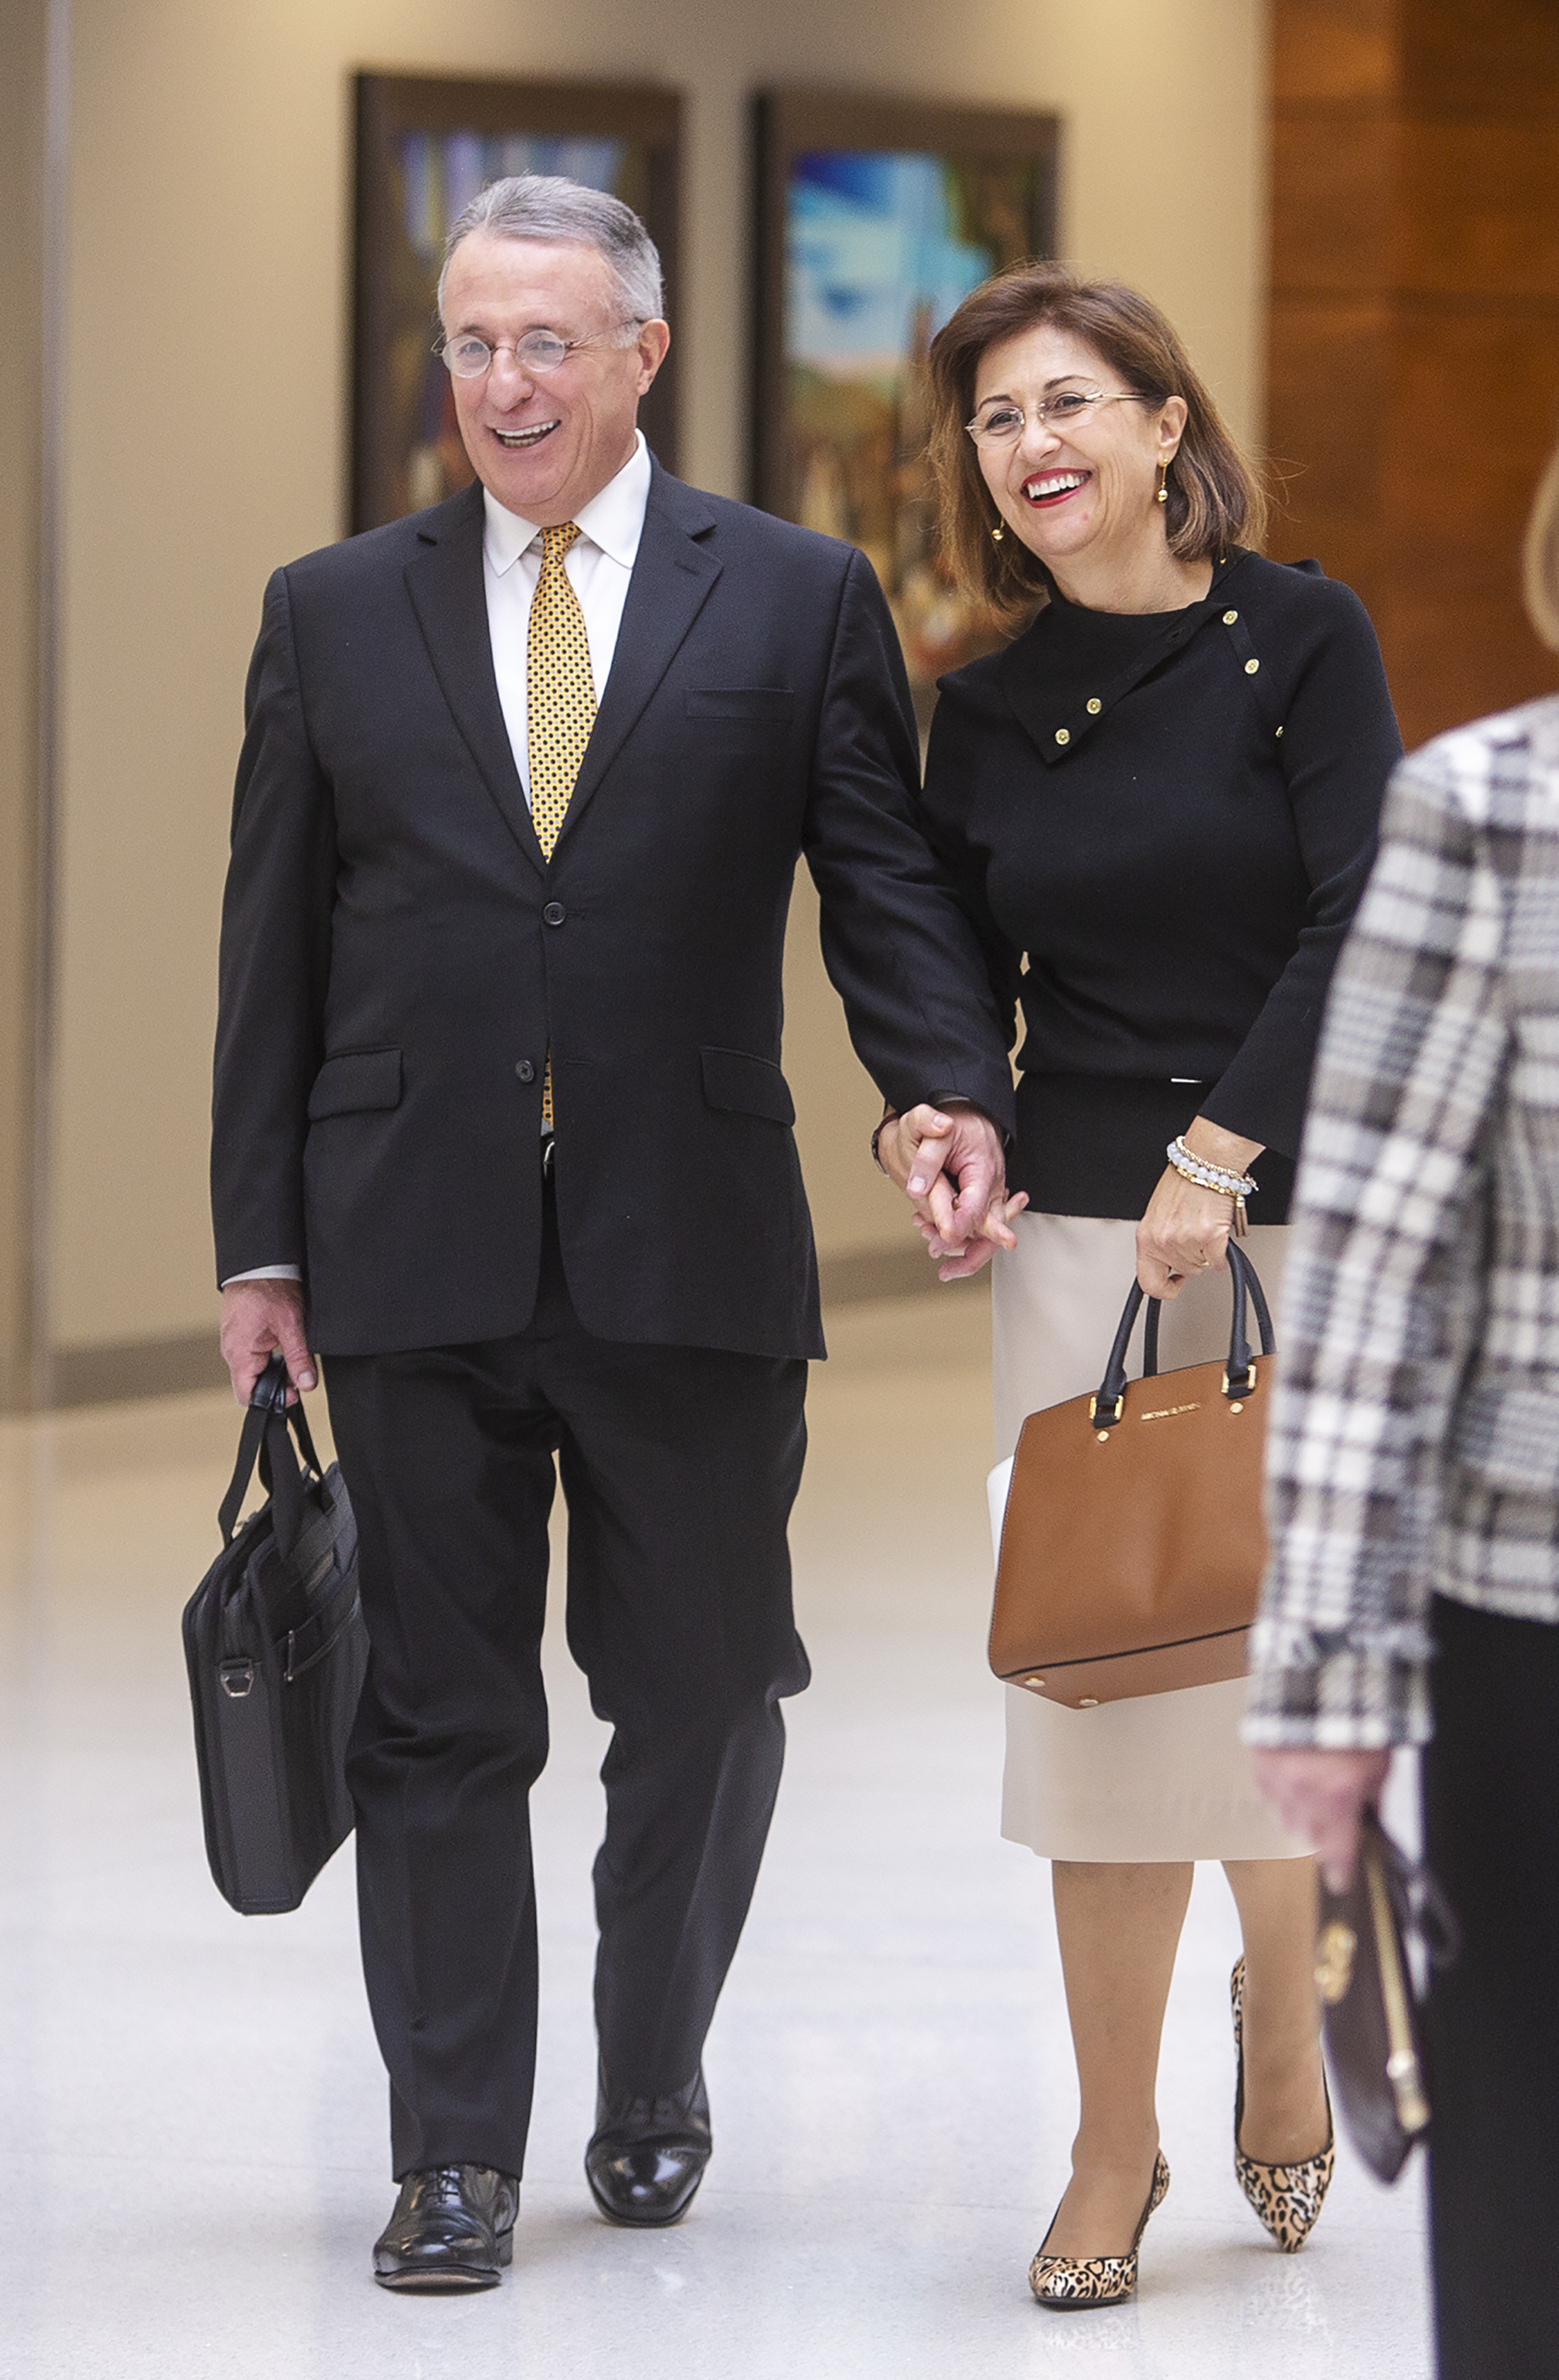 Elder Ulisses Soares of the Quorum of the Twelve Apostles and his wife, Sister Rosana Soares, arrive for the rededication prayer for the Caroline Hemenway Harman Building at BYU in Provo, Utah, on Tuesday, Feb. 5, 2019.